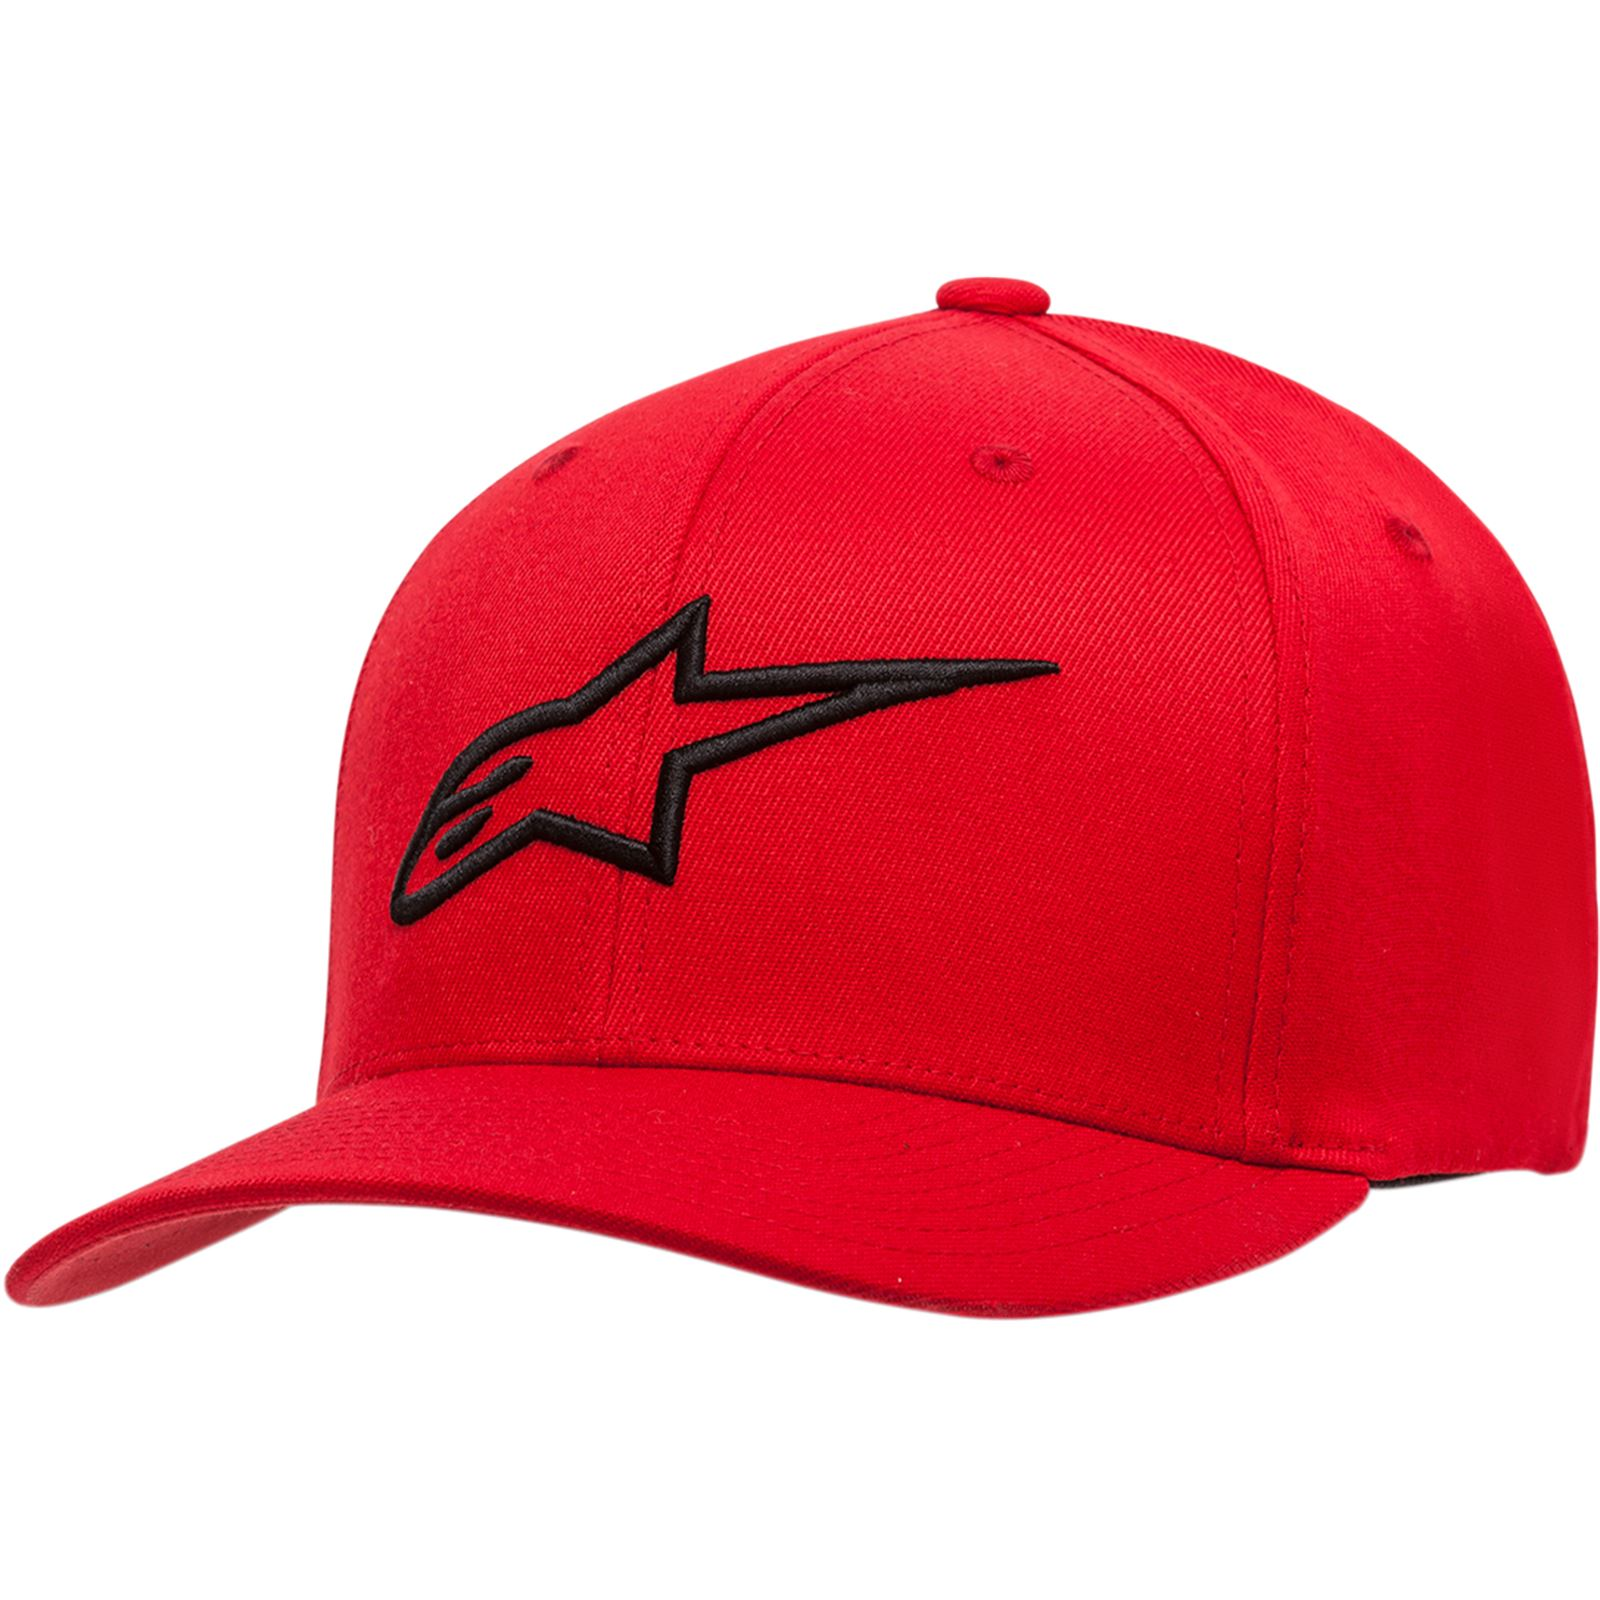 Alpinestars Youth Ageless Hat - Red/Black - One Size